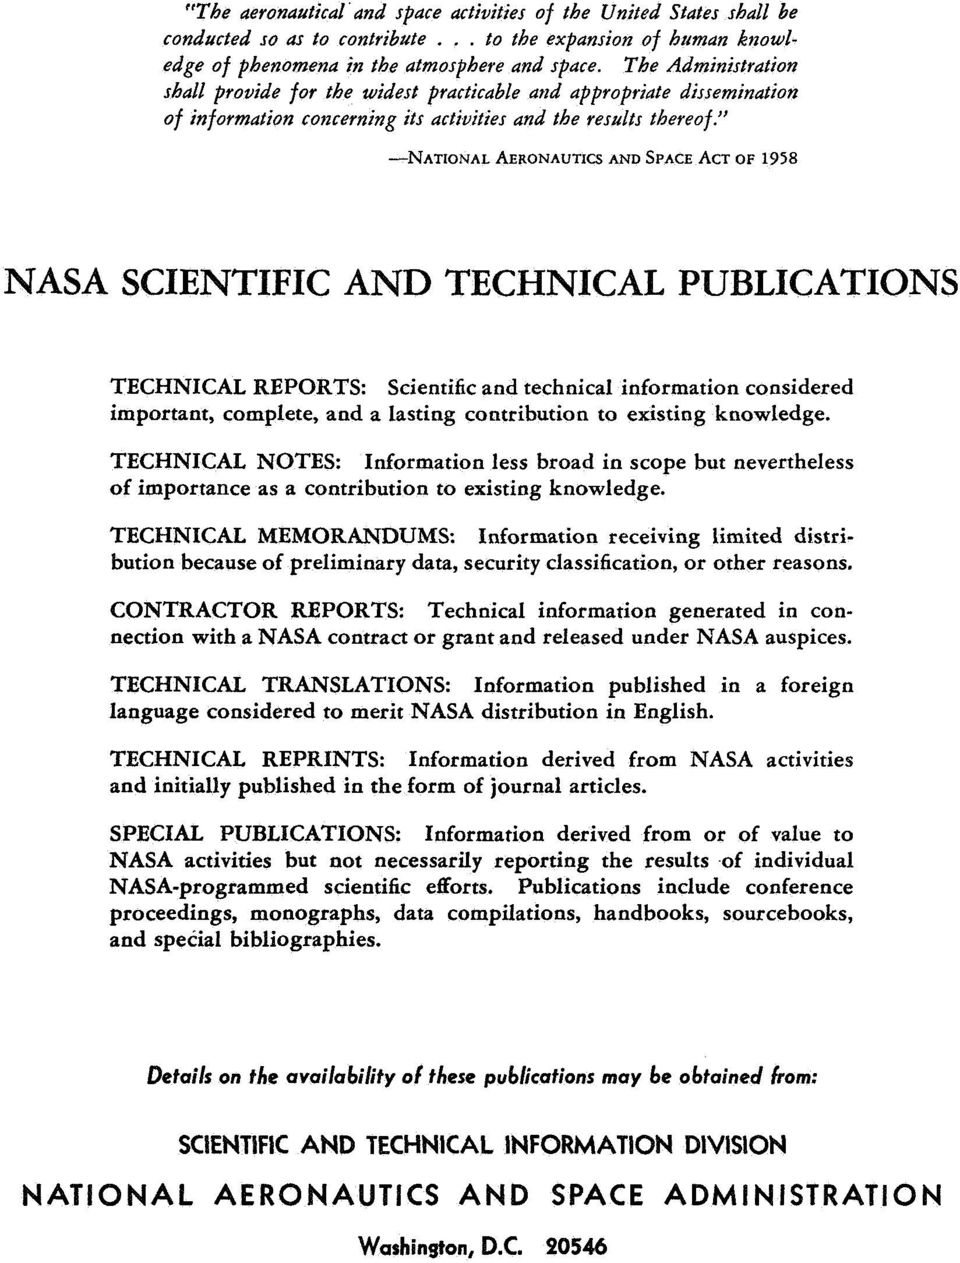 -NATIONAL AERONAUTICS AND SPACE ACT OF 1958 NASA SCIENTIFIC AND TECHNICAL PUBLICATIONS TECHNICAL REPORTS: Scientific and technical information considered important, complete, and a lasting